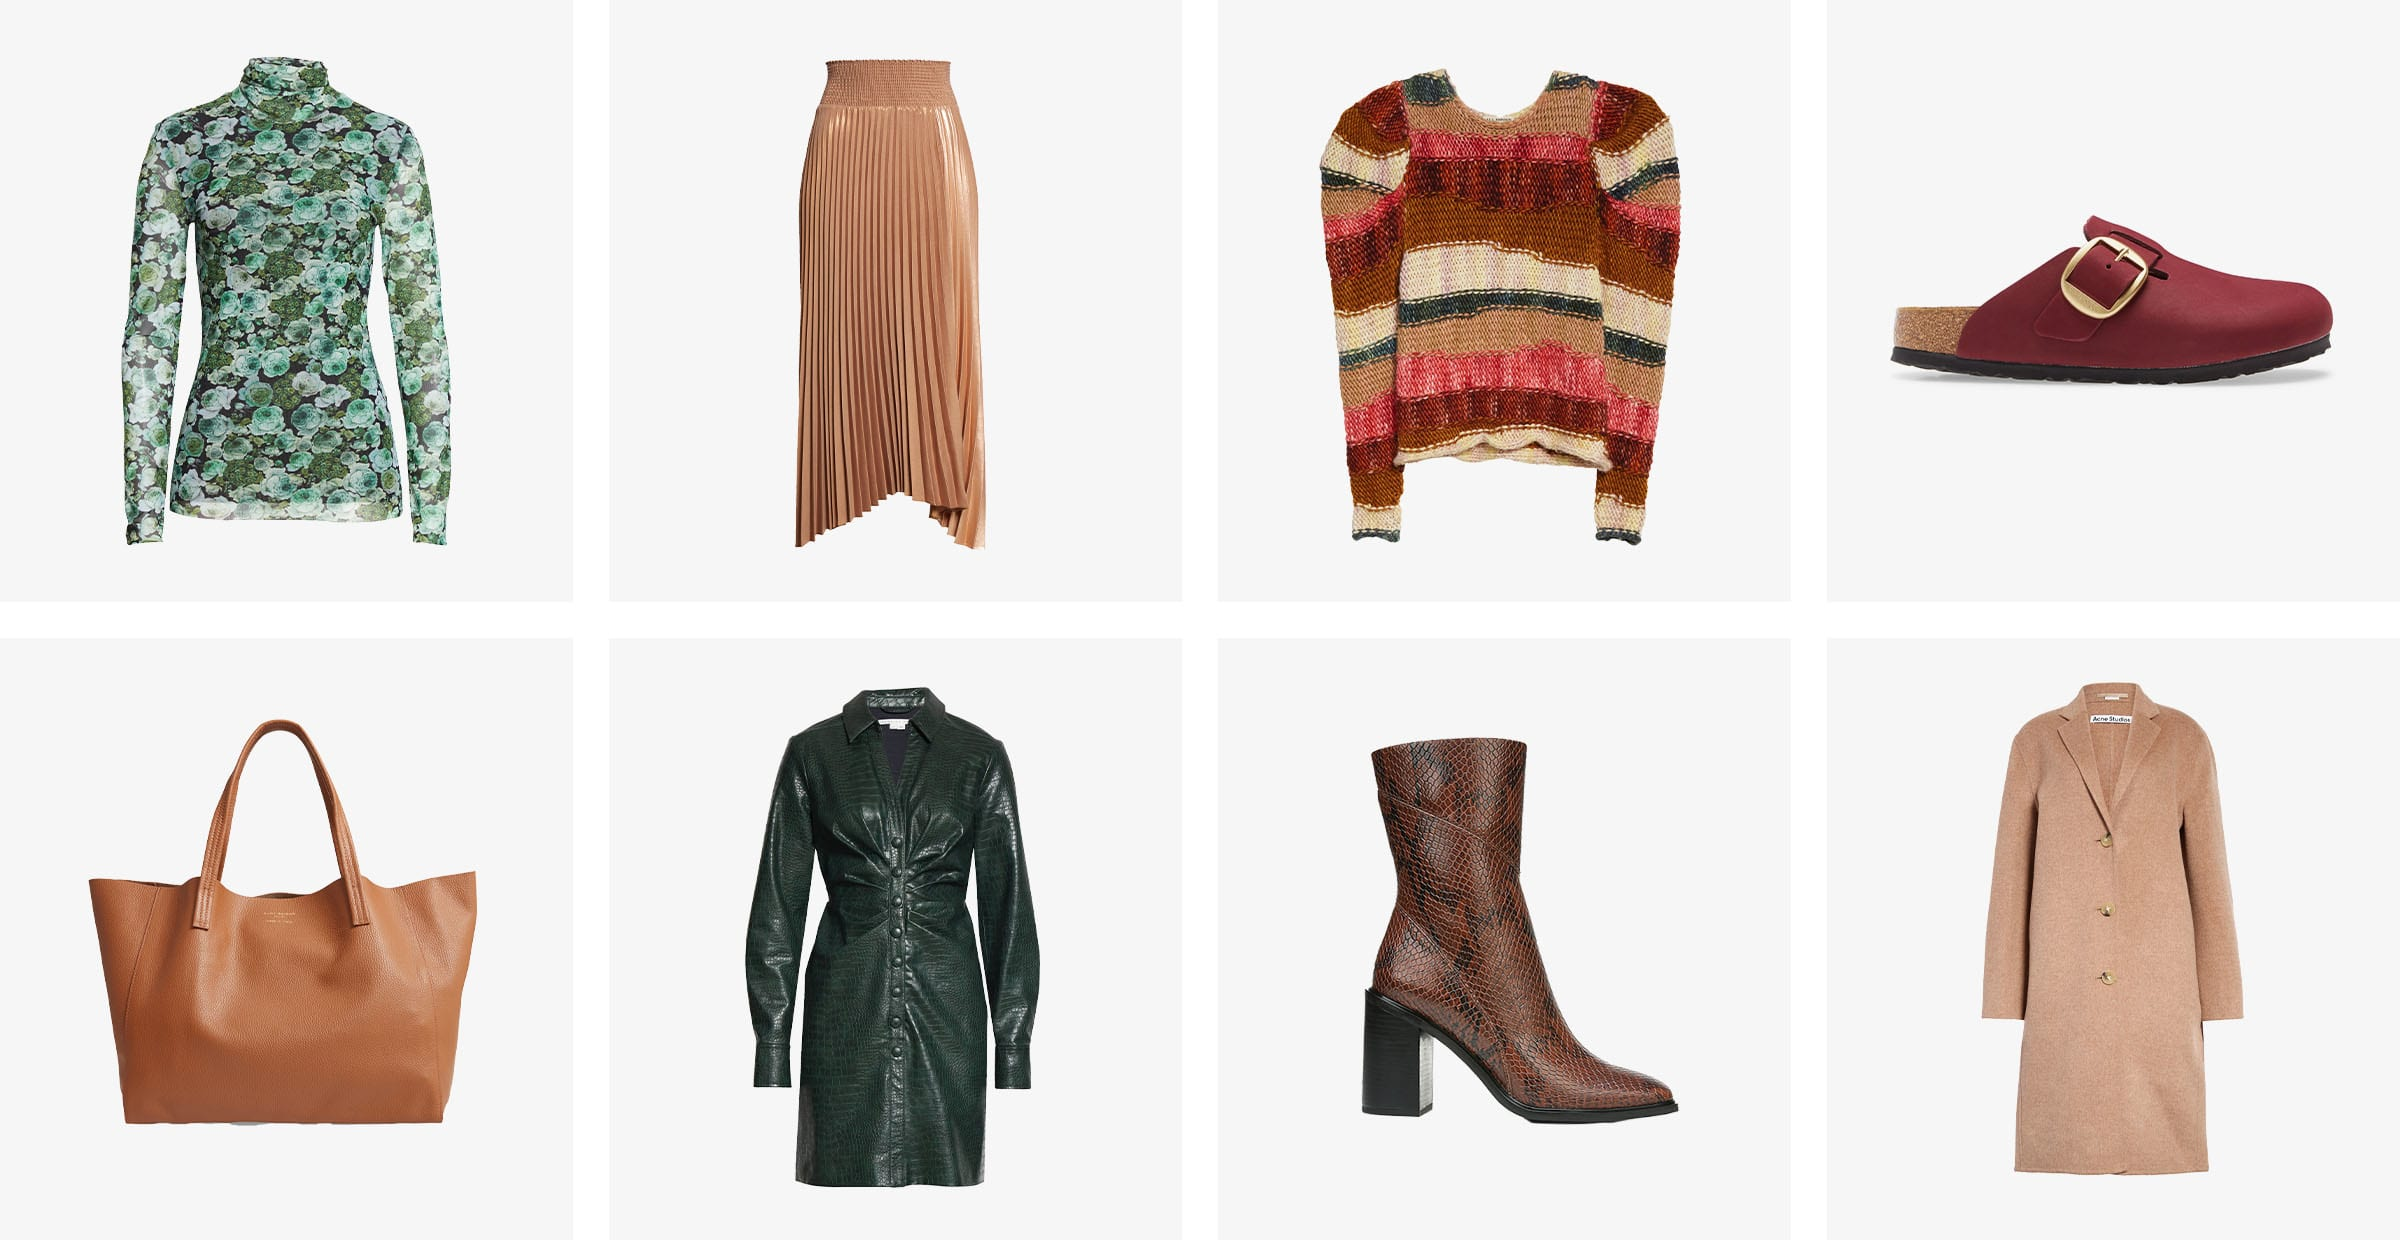 A green floral turtleneck, a pleated brown skirt, a multicolored sweater, brown Birkenstocks, a brown tote, a dark-green leather dress, a brown boot and a tan coat.